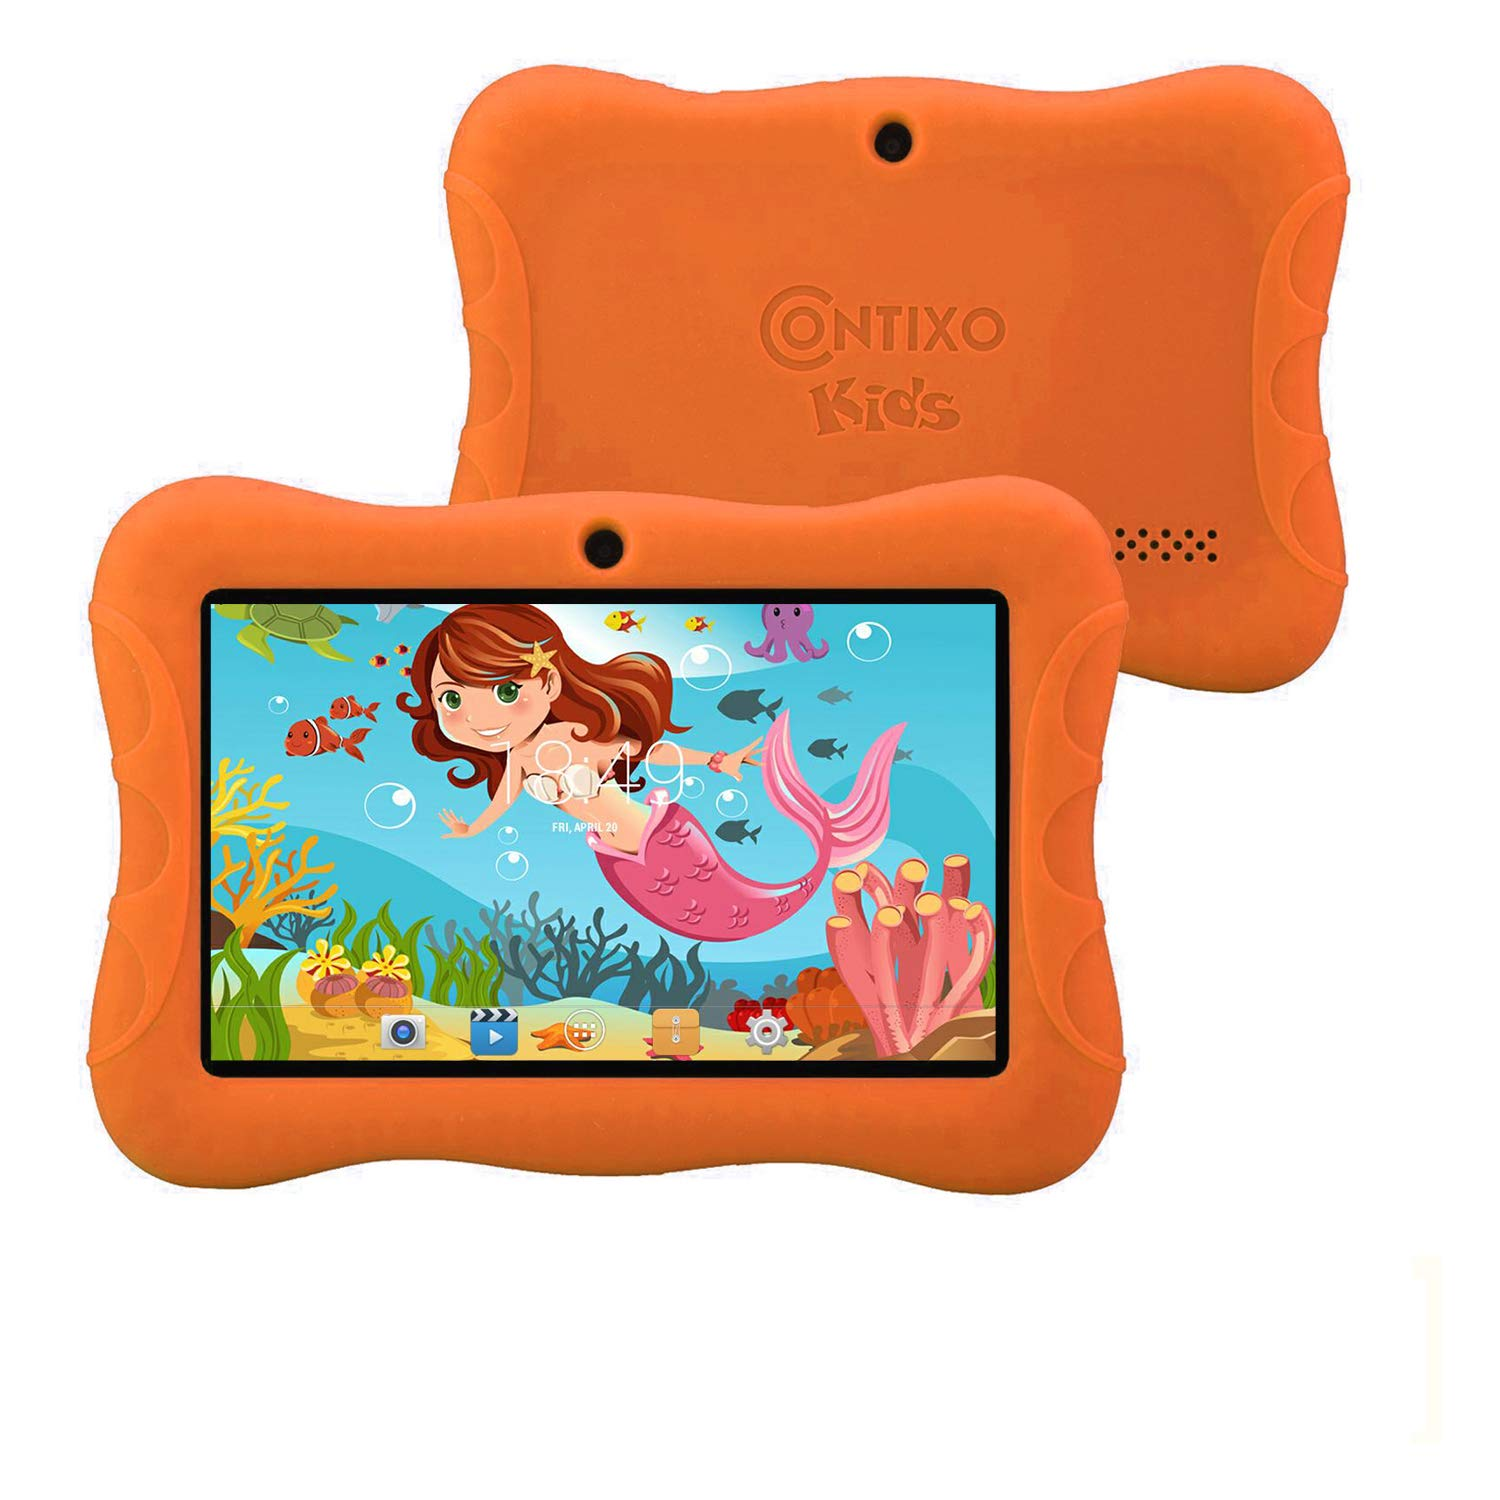 - Contixo 7'' inch Android 6.0 Kids Tablet | Parental Control with Preloaded Learning Educational Apps & Games + Kids Proof Case-2019 Edition K3 (Orange)